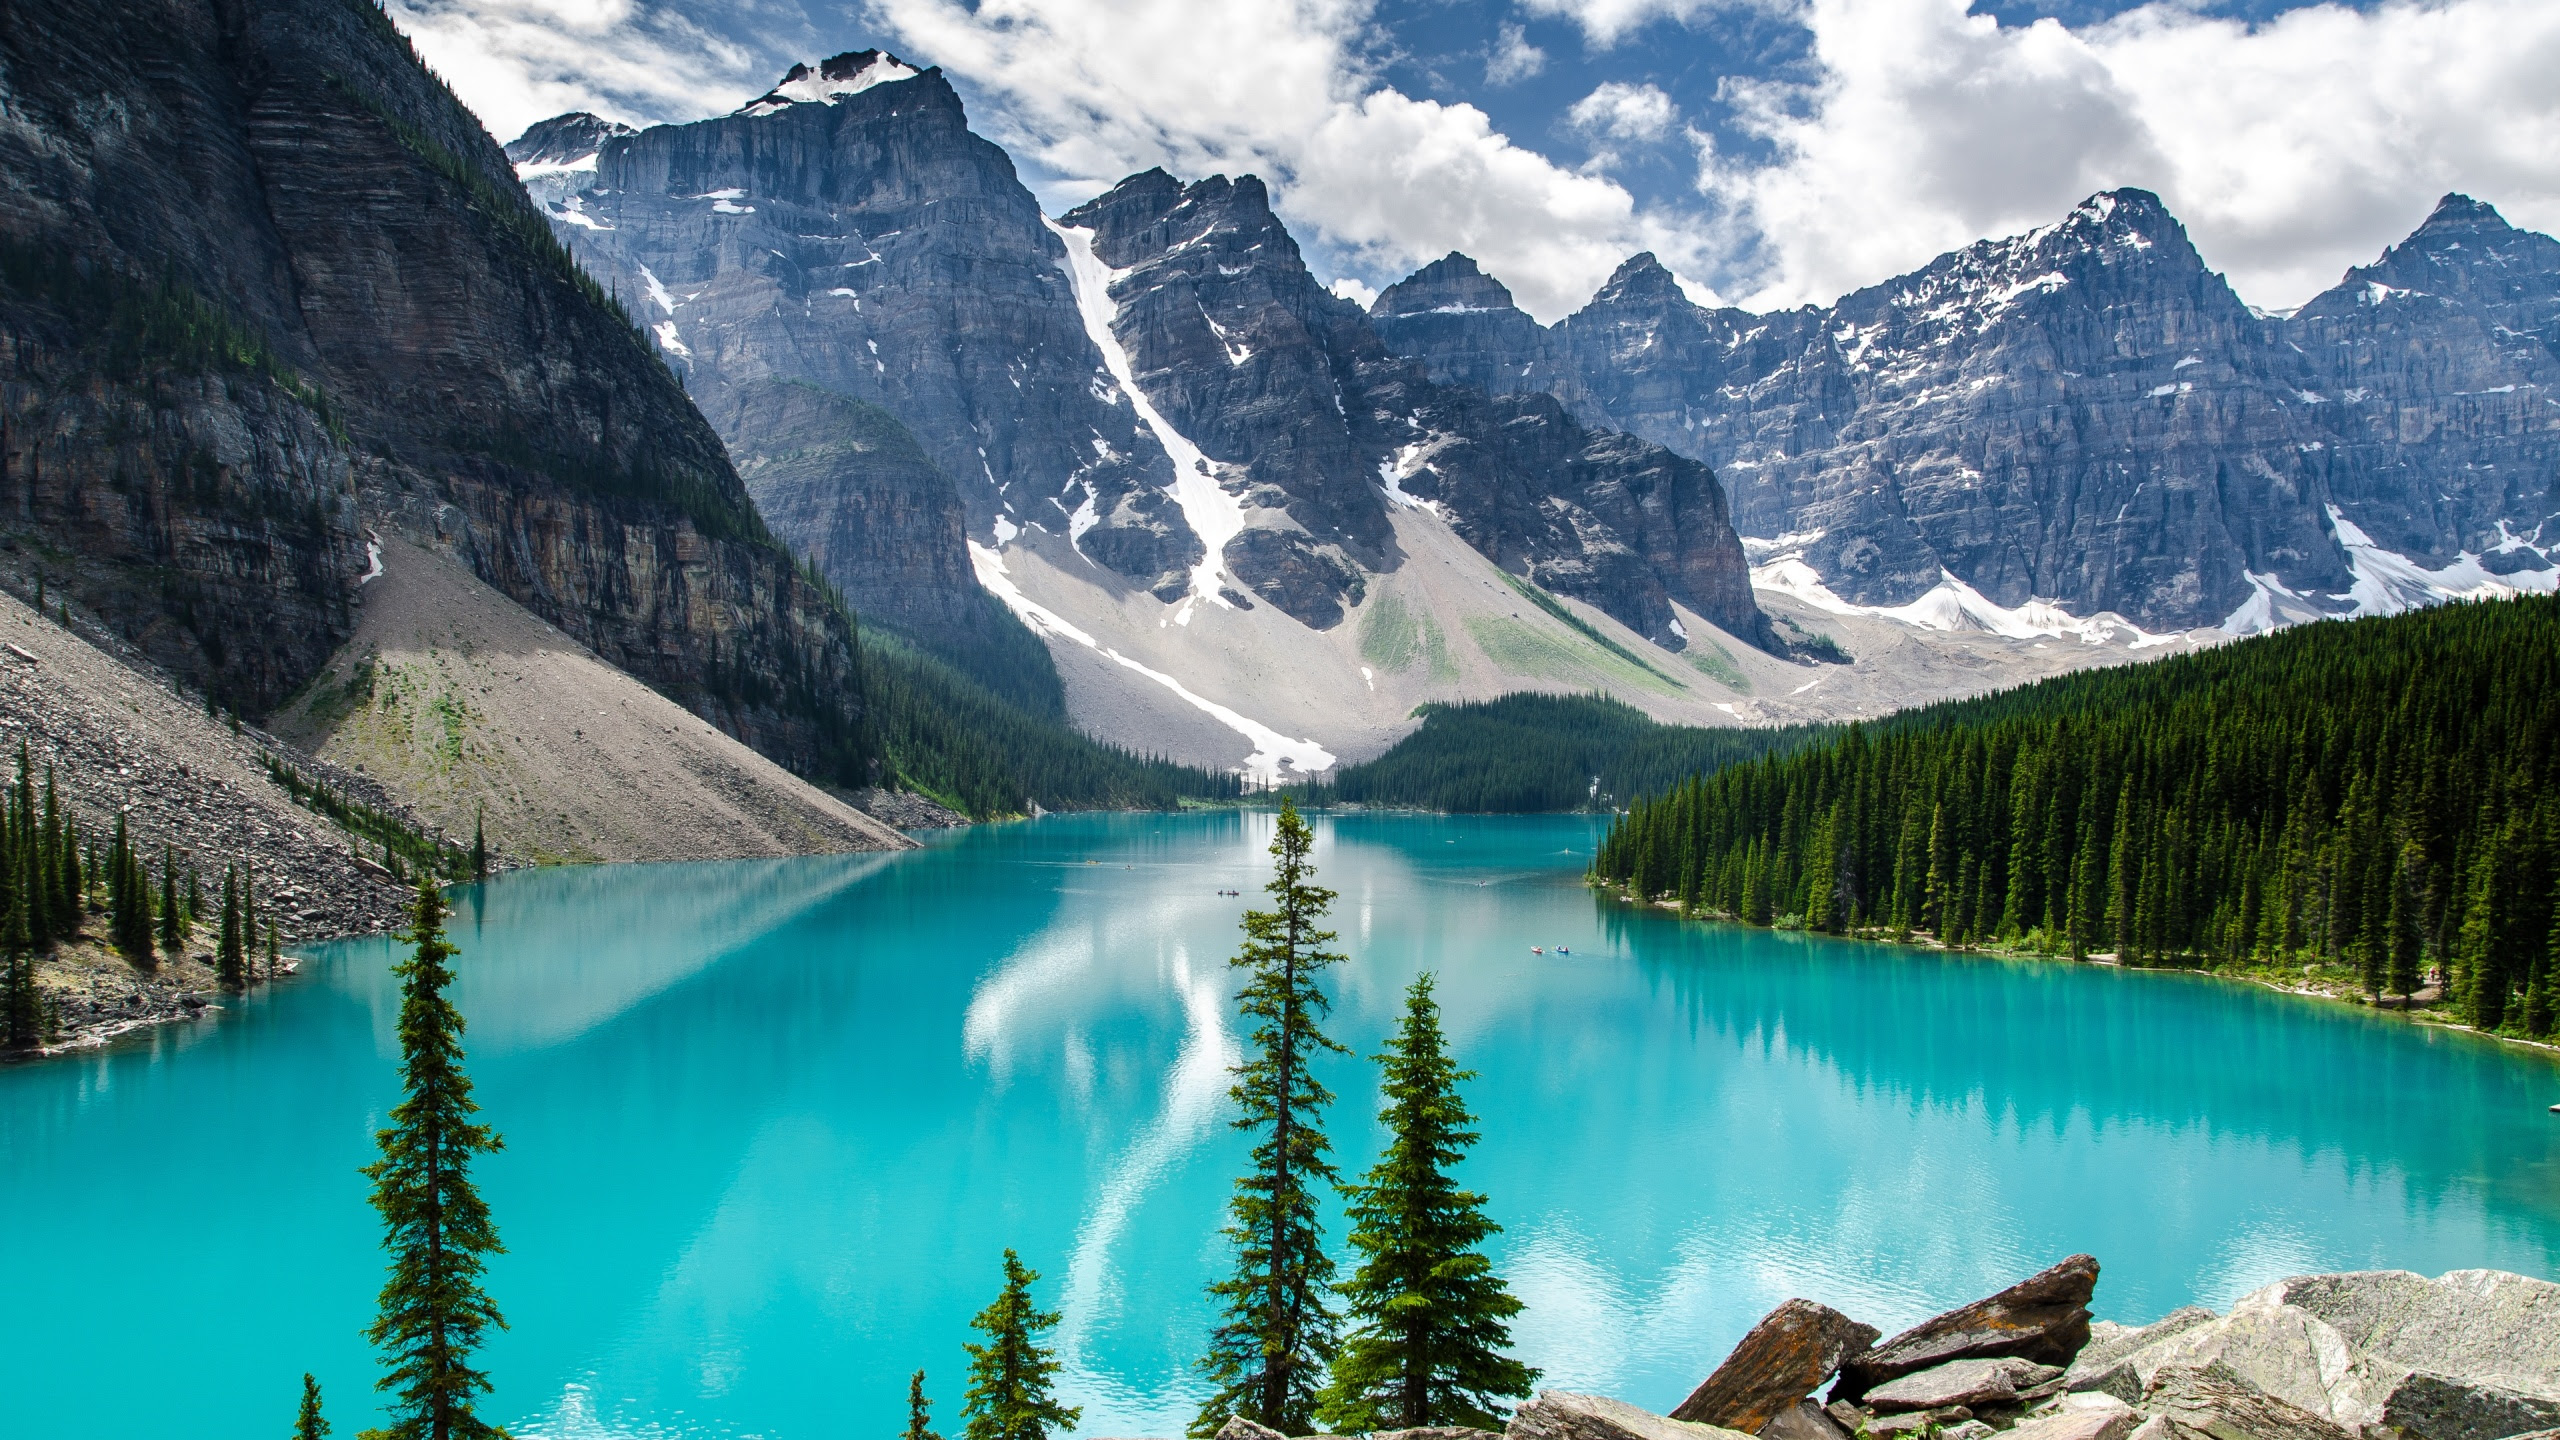 Moraine Lake Banff National Park Wallpapers In Jpg Format For Free